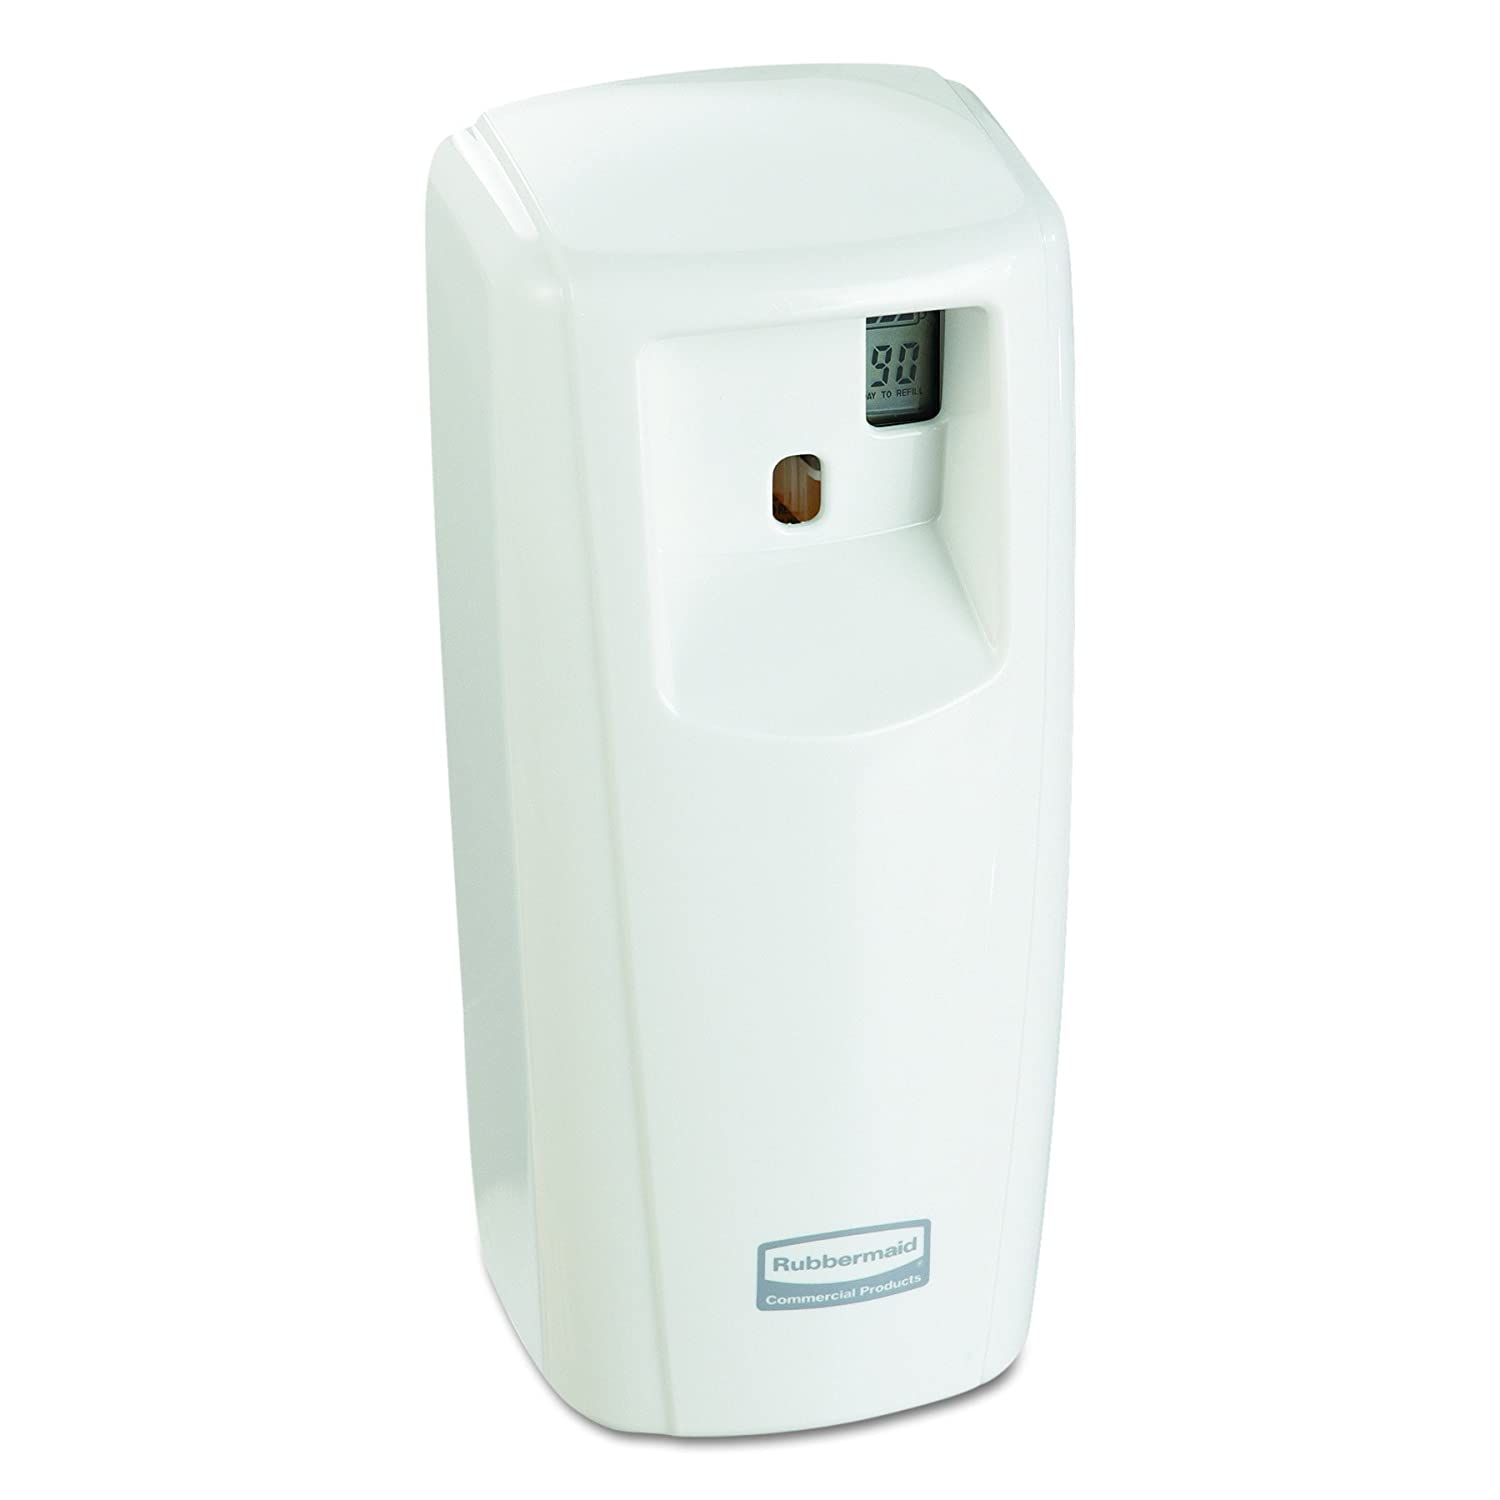 Rubbermaid Commercial Microburst Odor Control System 9000 LCD, White